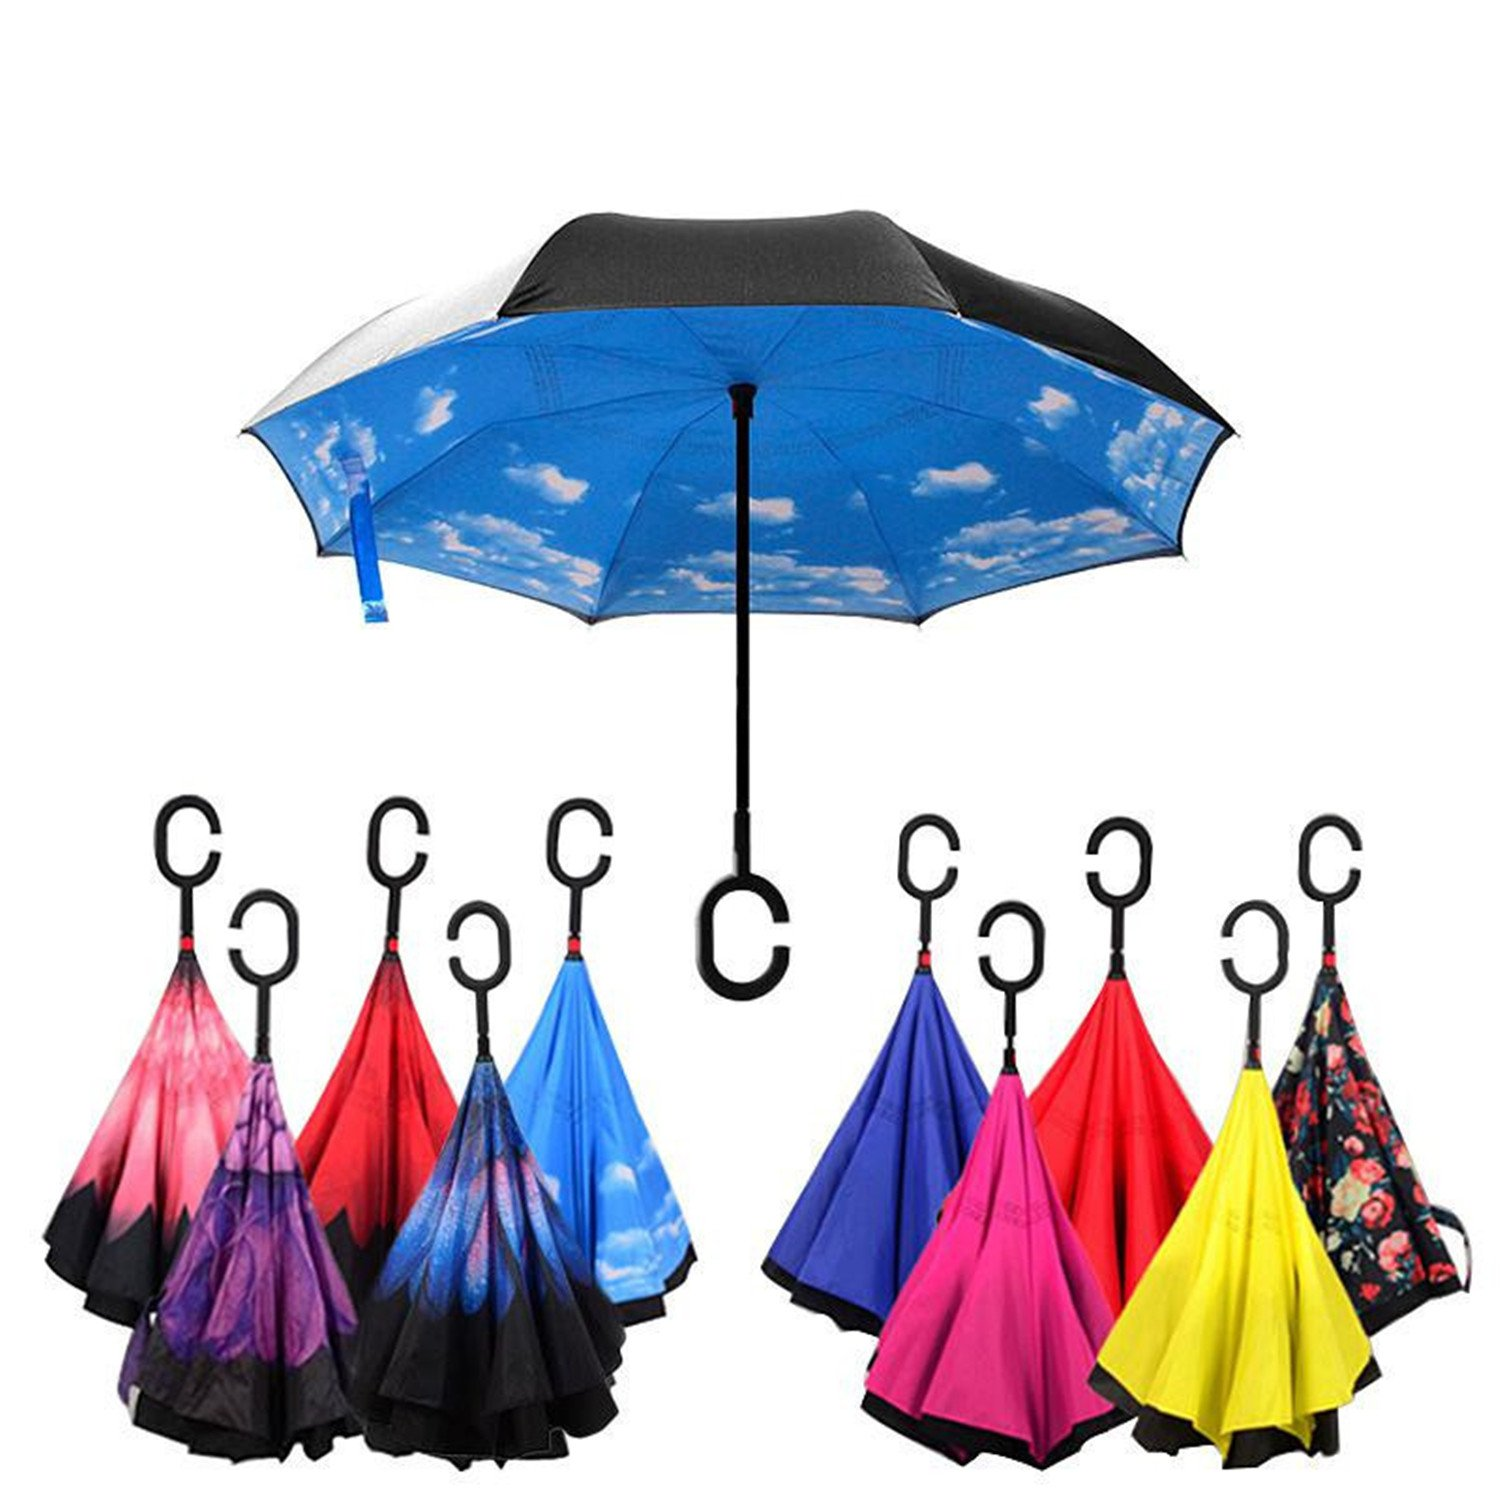 Amazon.com: Hogonta Folding Reverse Umbrella Double Layer Inverted Windproof Rain Car Umbrellas For Women Black: Sports & Outdoors